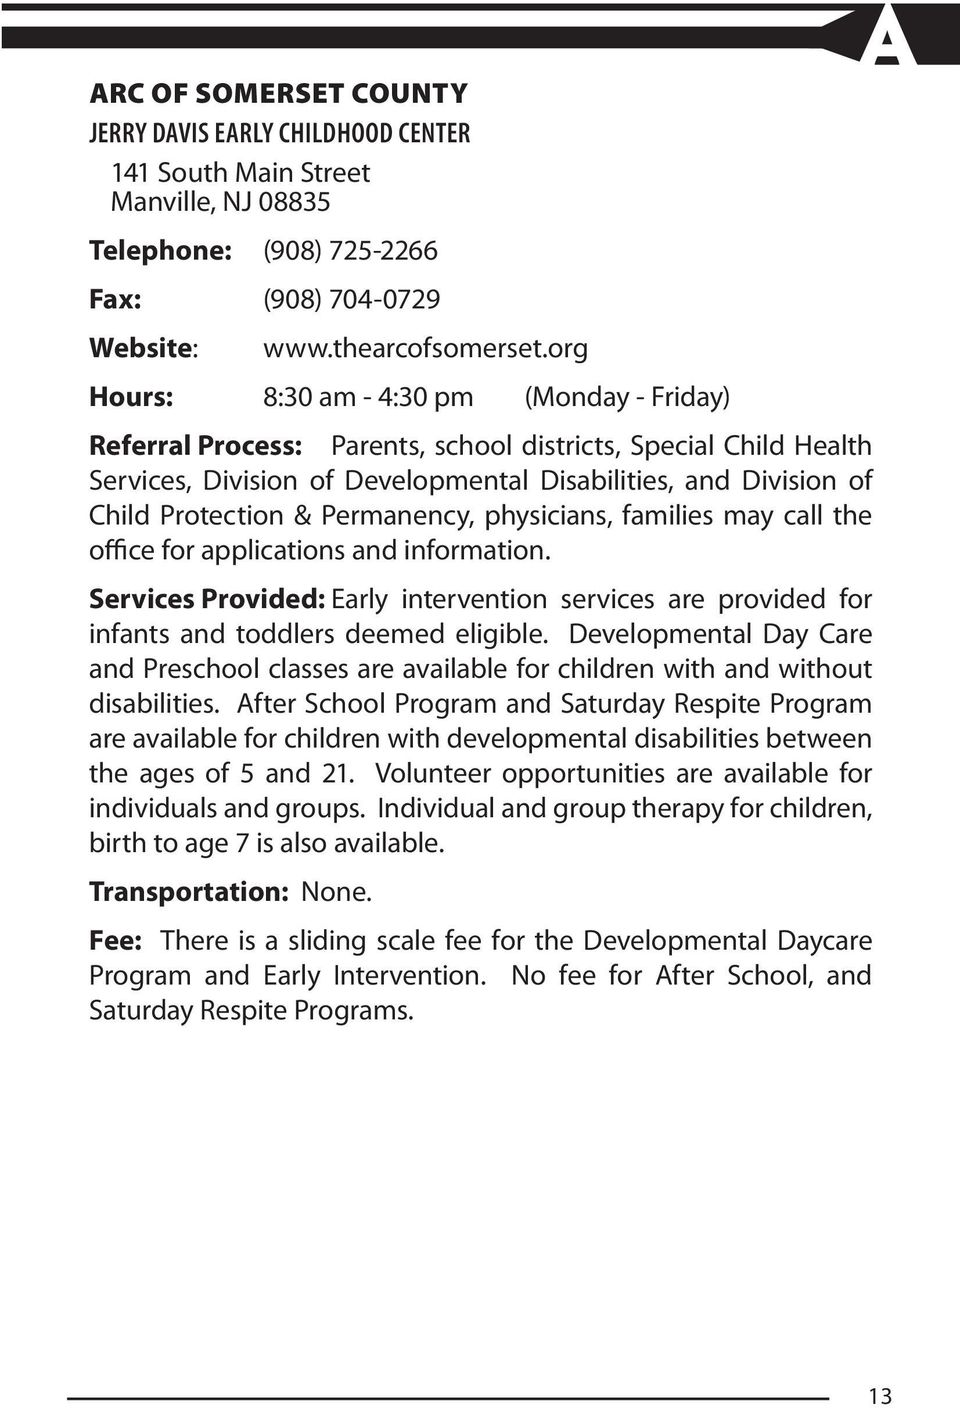 Permanency, physicians, families may call the office for applications and information. Services Provided: Early intervention services are provided for infants and toddlers deemed eligible.